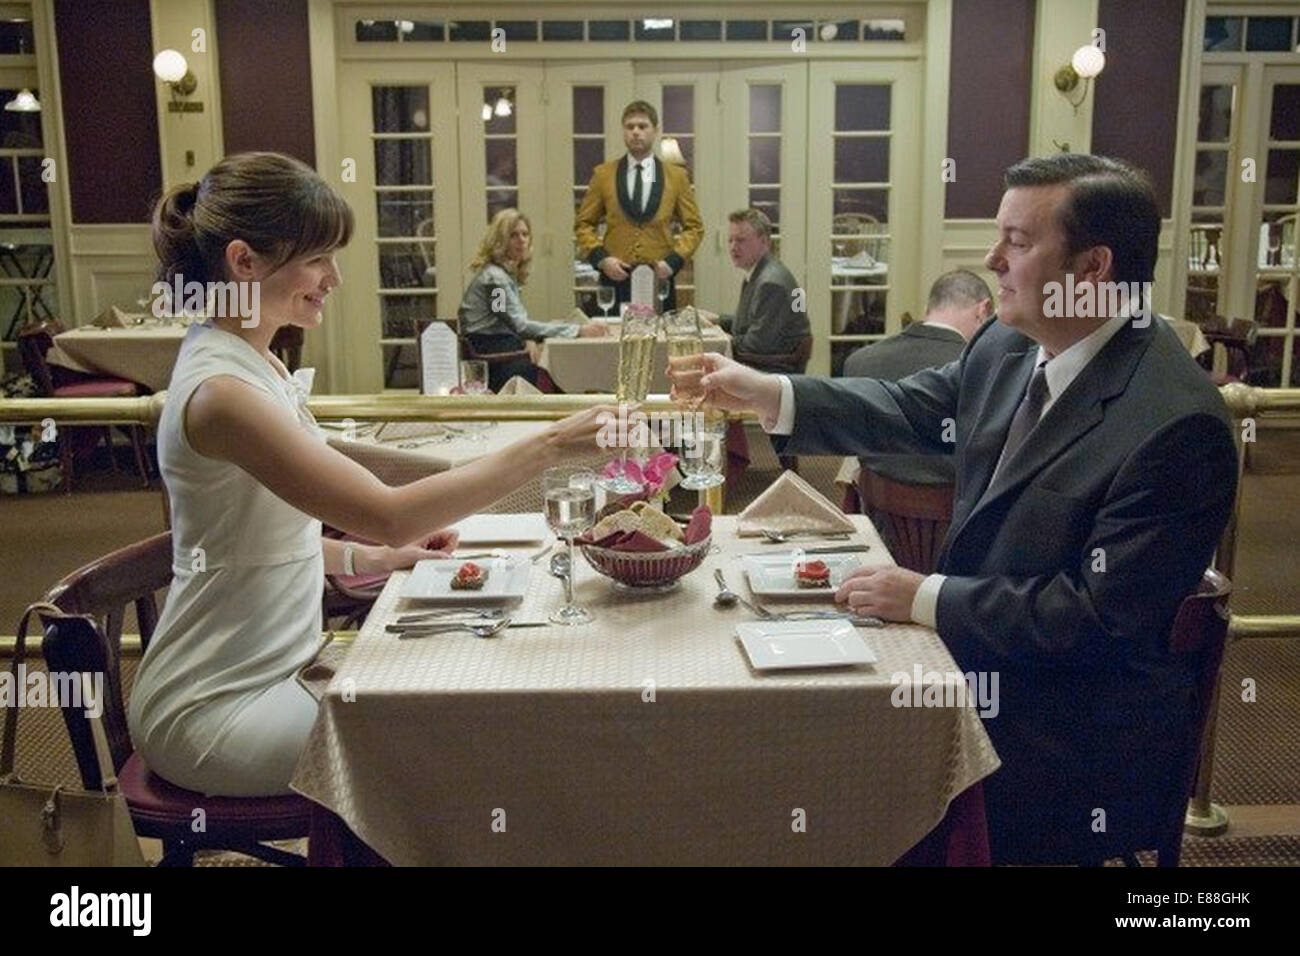 THE INVENTION OF LYING 2009 film with Jennifer Garner and Ricky Gervais - Stock Image